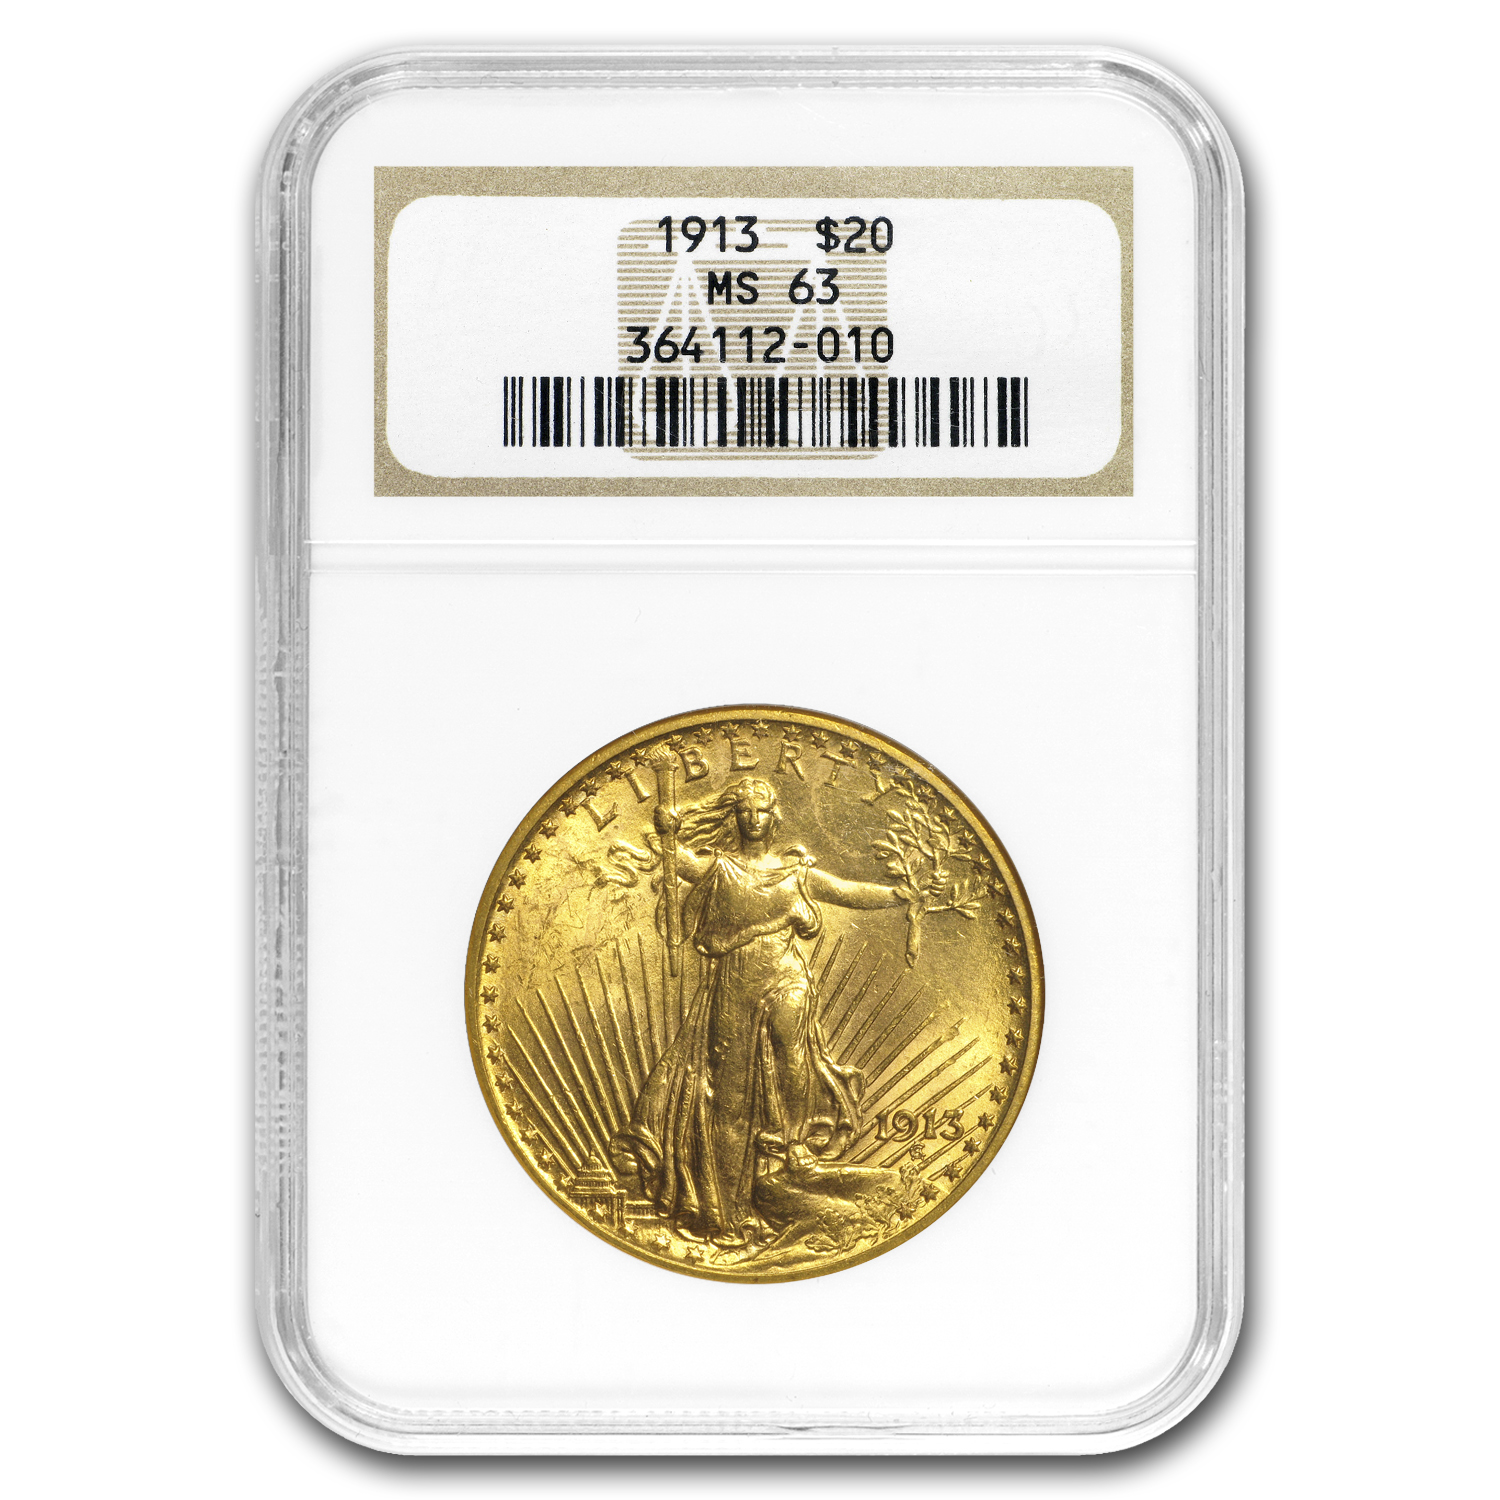 1913 $20 St. Gaudens Gold Double Eagle - MS-63 NGC